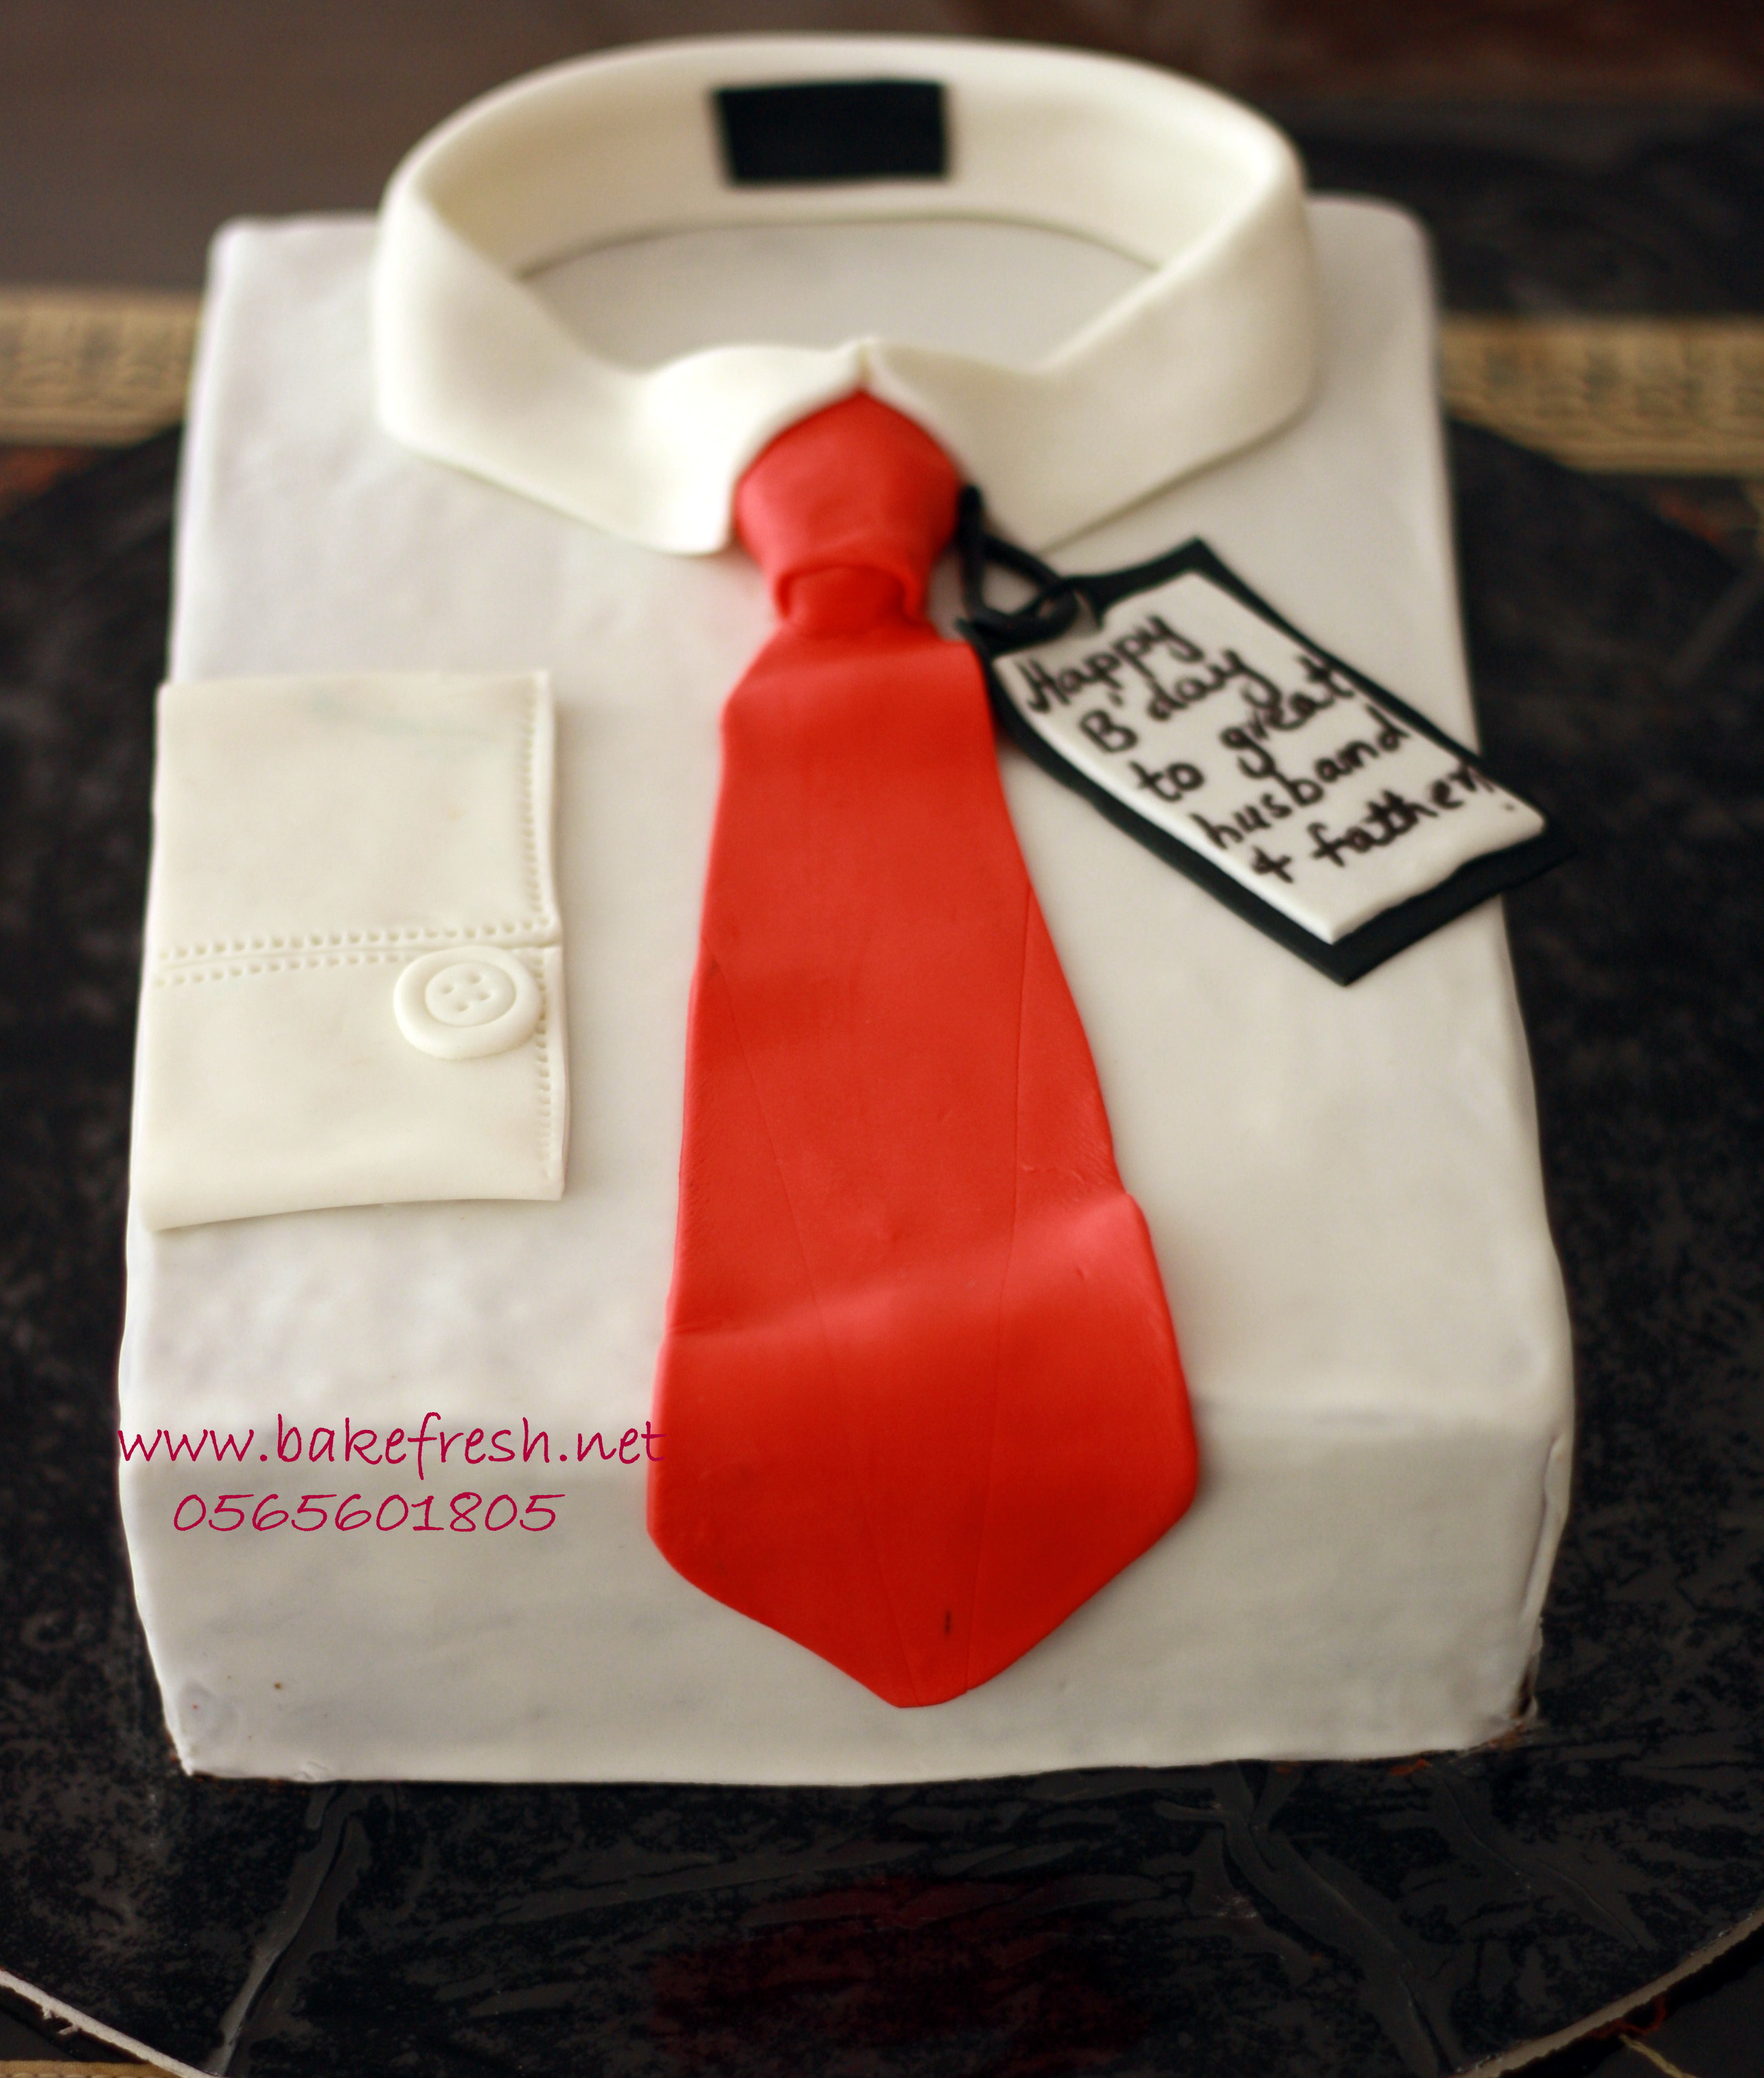 personalized birthday celebration cake polo and tie design